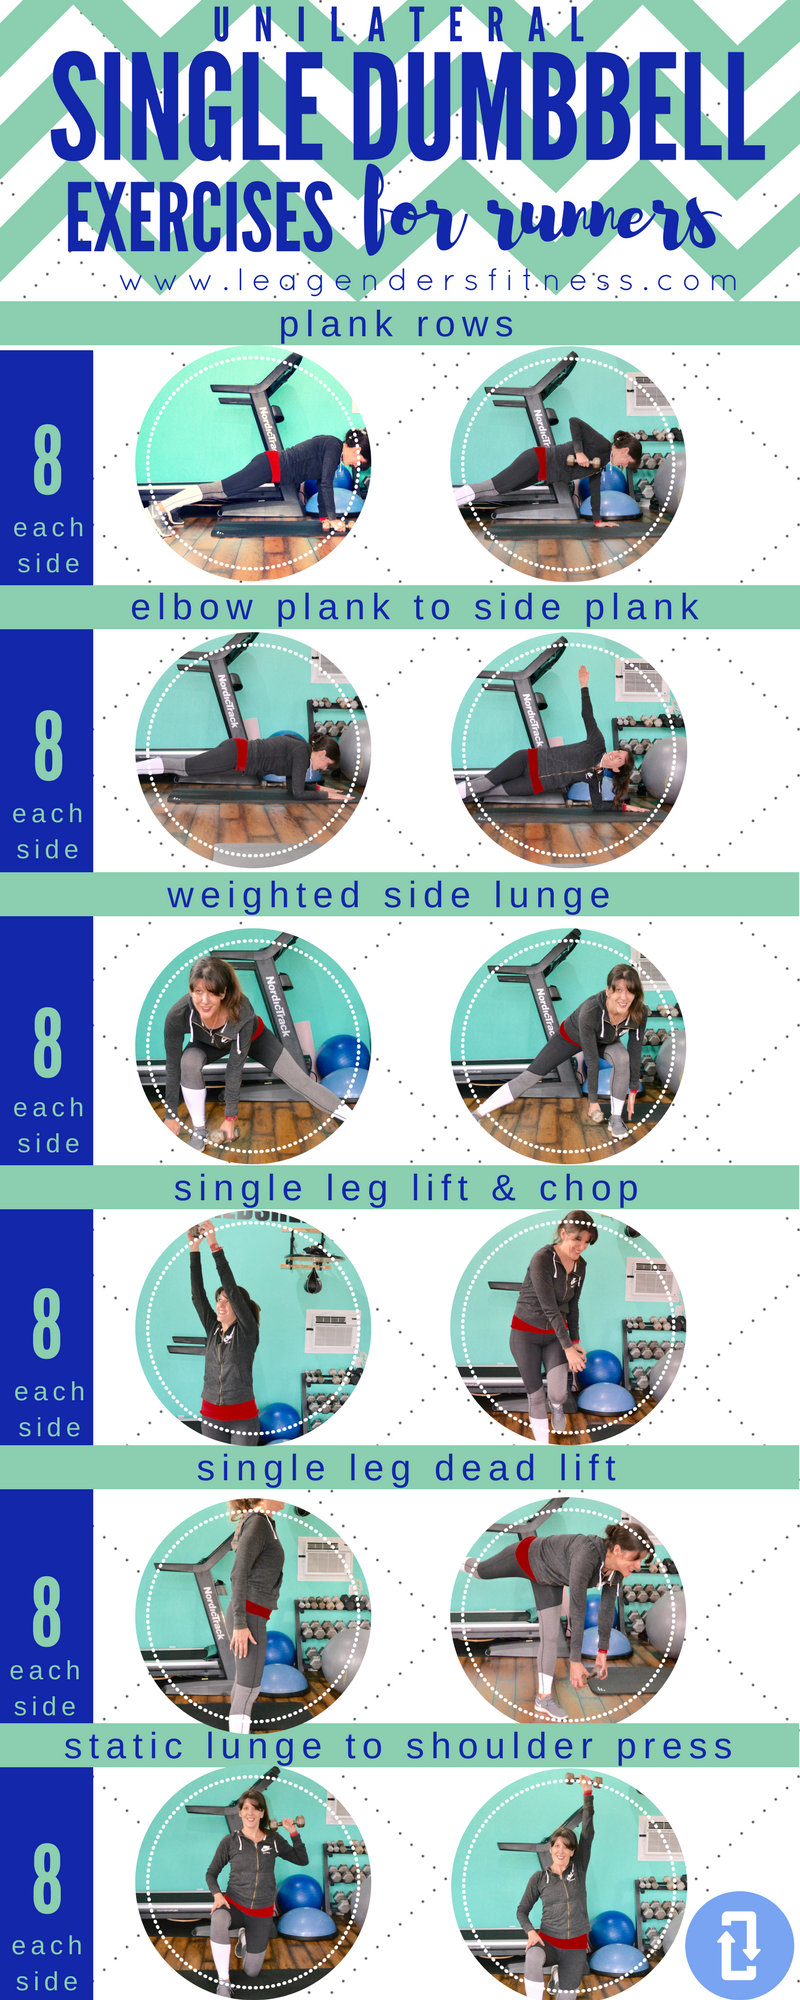 unilateral single dumbbell exercises for runners.png